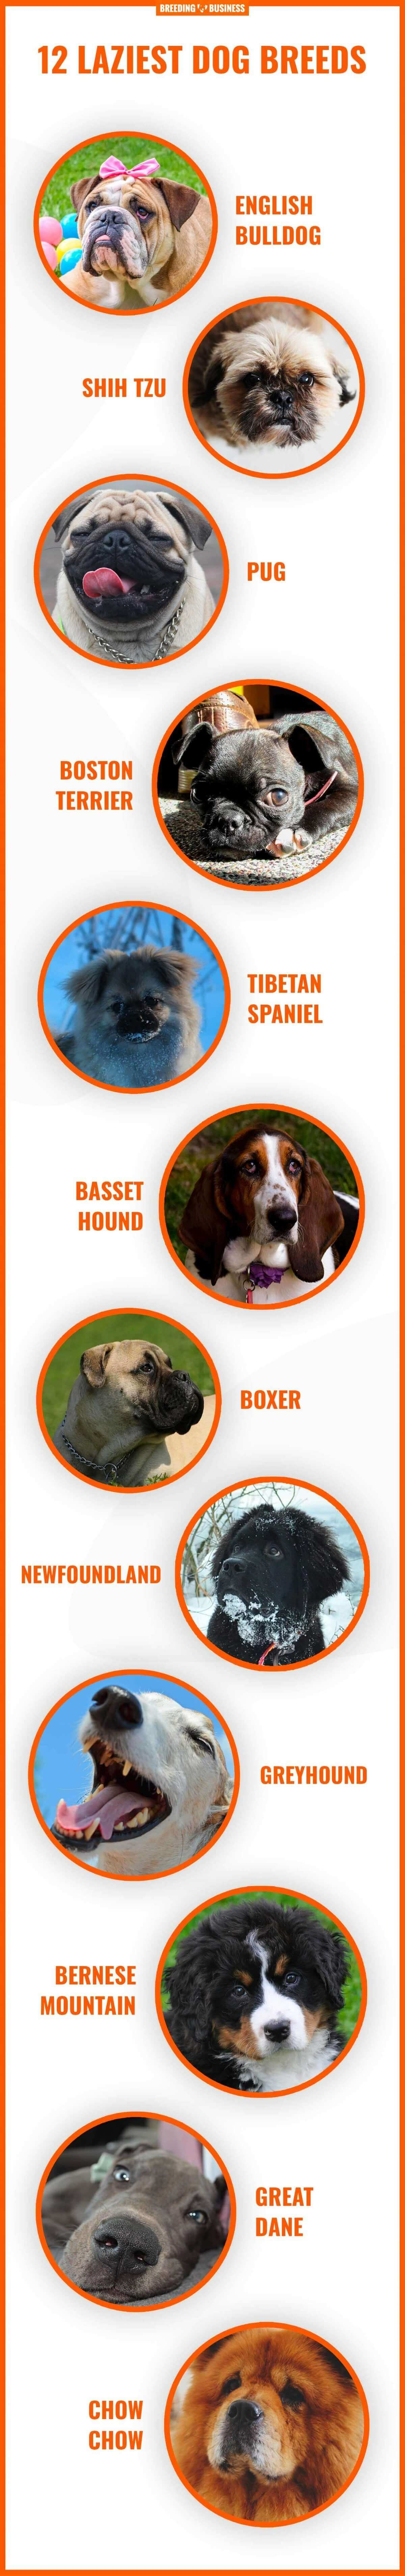 laziest and least-energy dog breeds (infographic)